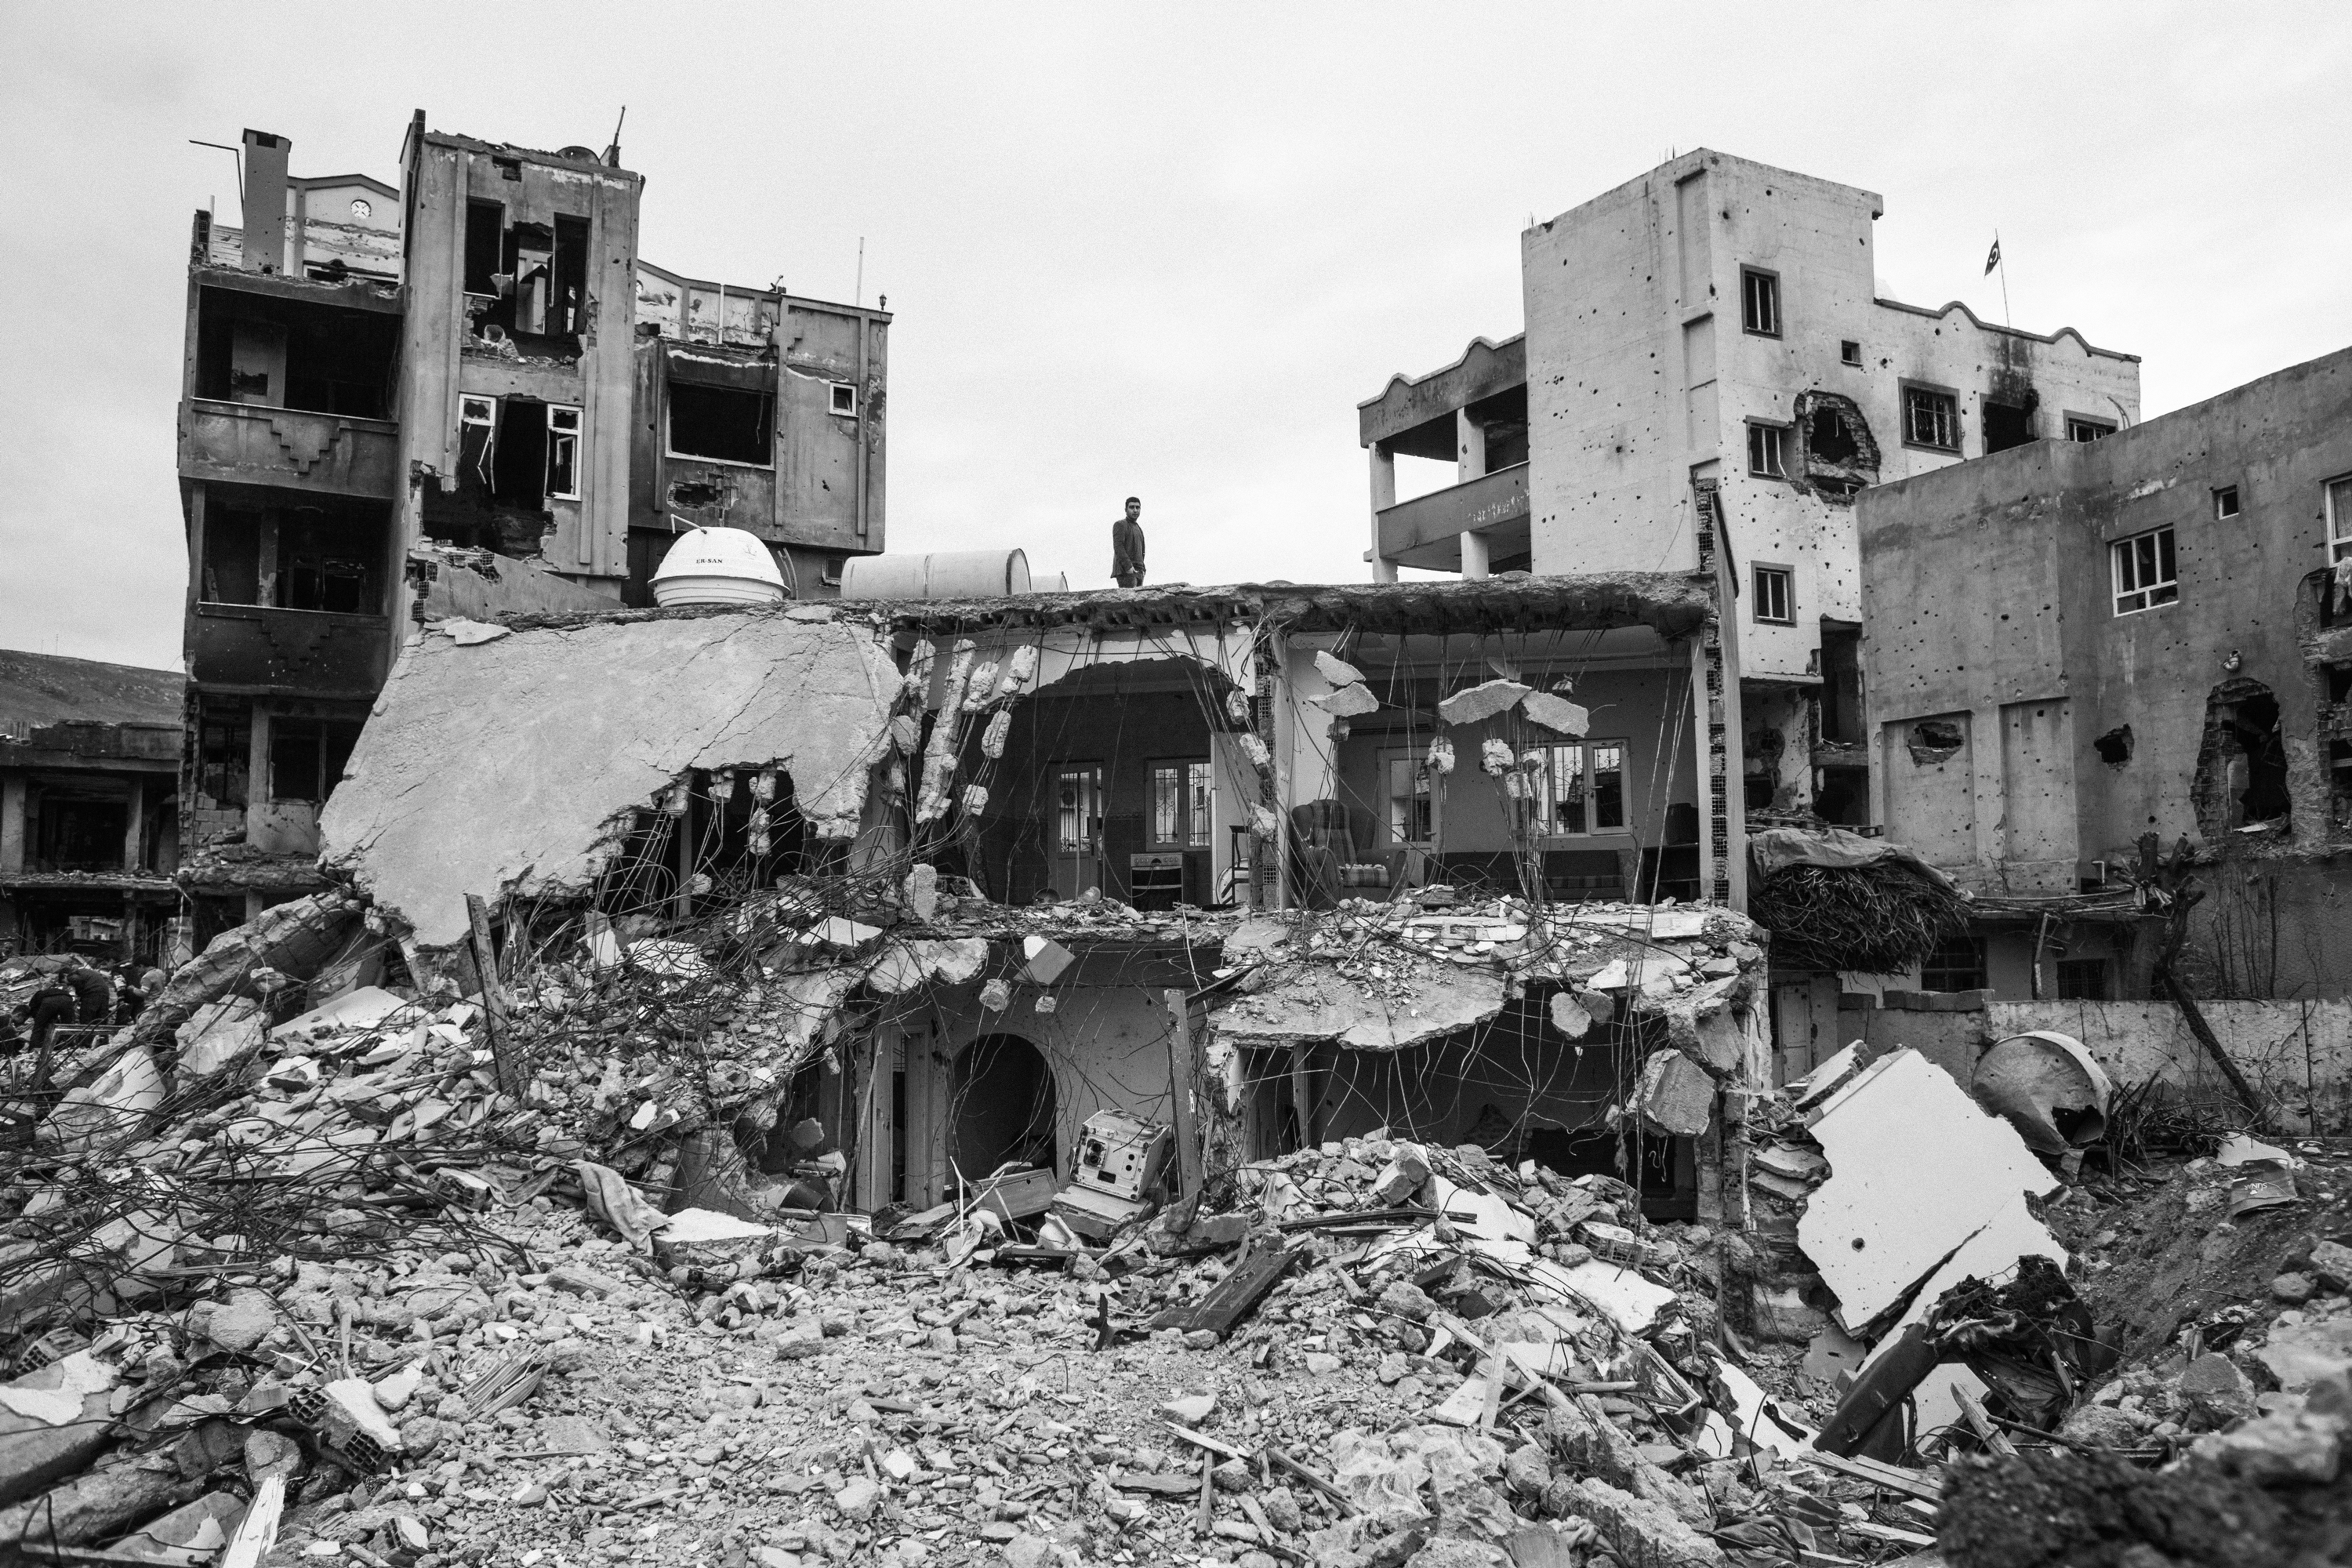 A man stands on his destroyed house in Cizre. Families returned to Cizre after a very long curfew. The clashes between the turkish government and PKK rebels left many homes in ruins. Families went back to Cizre after 78 days of curfew. In Cizre, 278 civilians have been killed during the clashes since july 2015. Cizre, Turkey, March 2016.